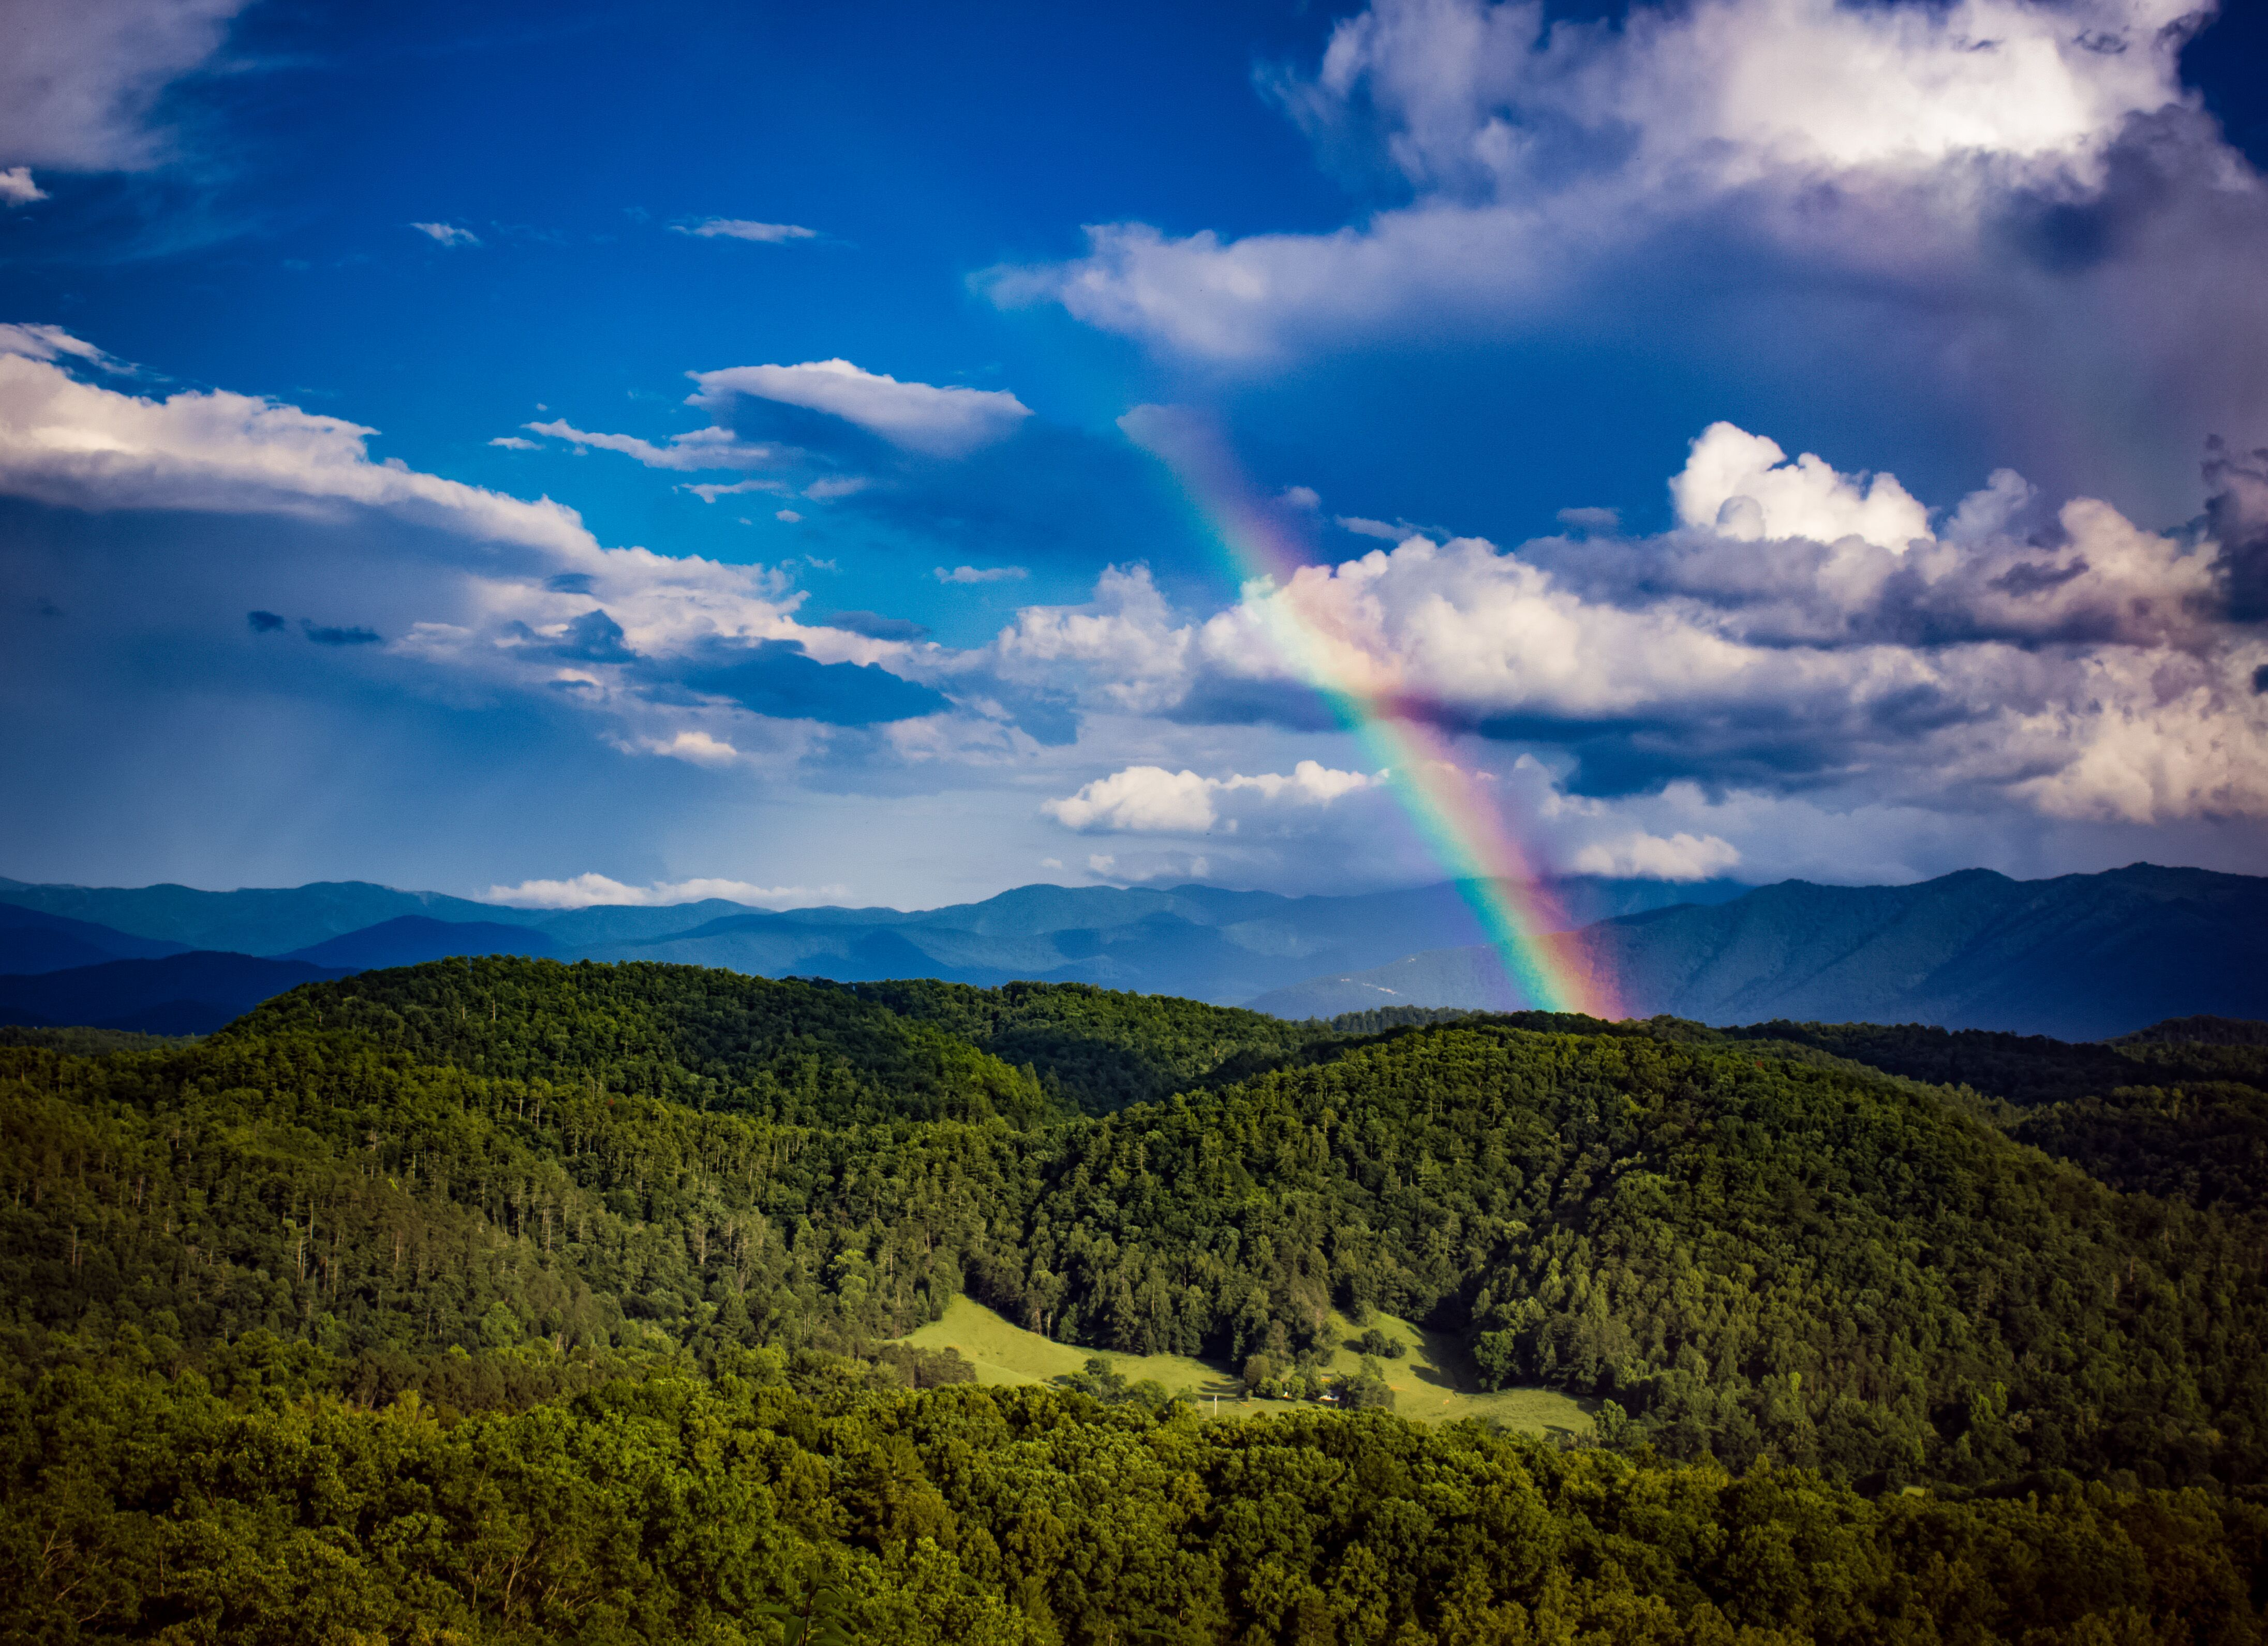 The Smoky Mountains Is The Pot Of Gold At The End Of This Rainbow